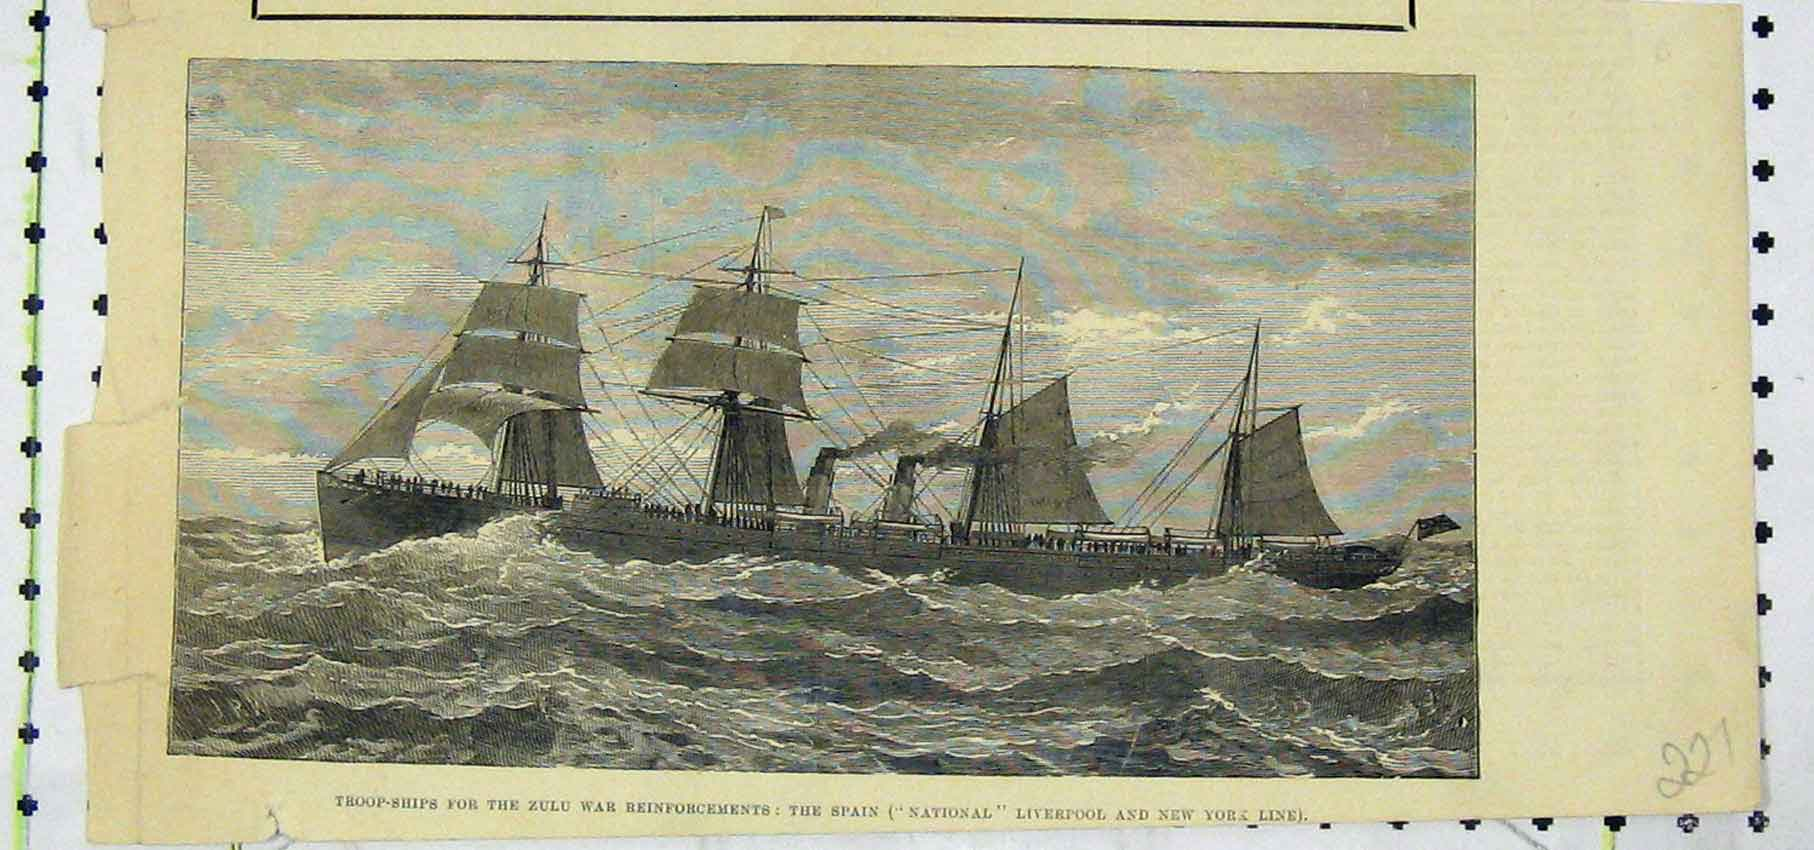 Print Troop-Ships Zulu War Spain National Liverpool New York 227B250 Old Original